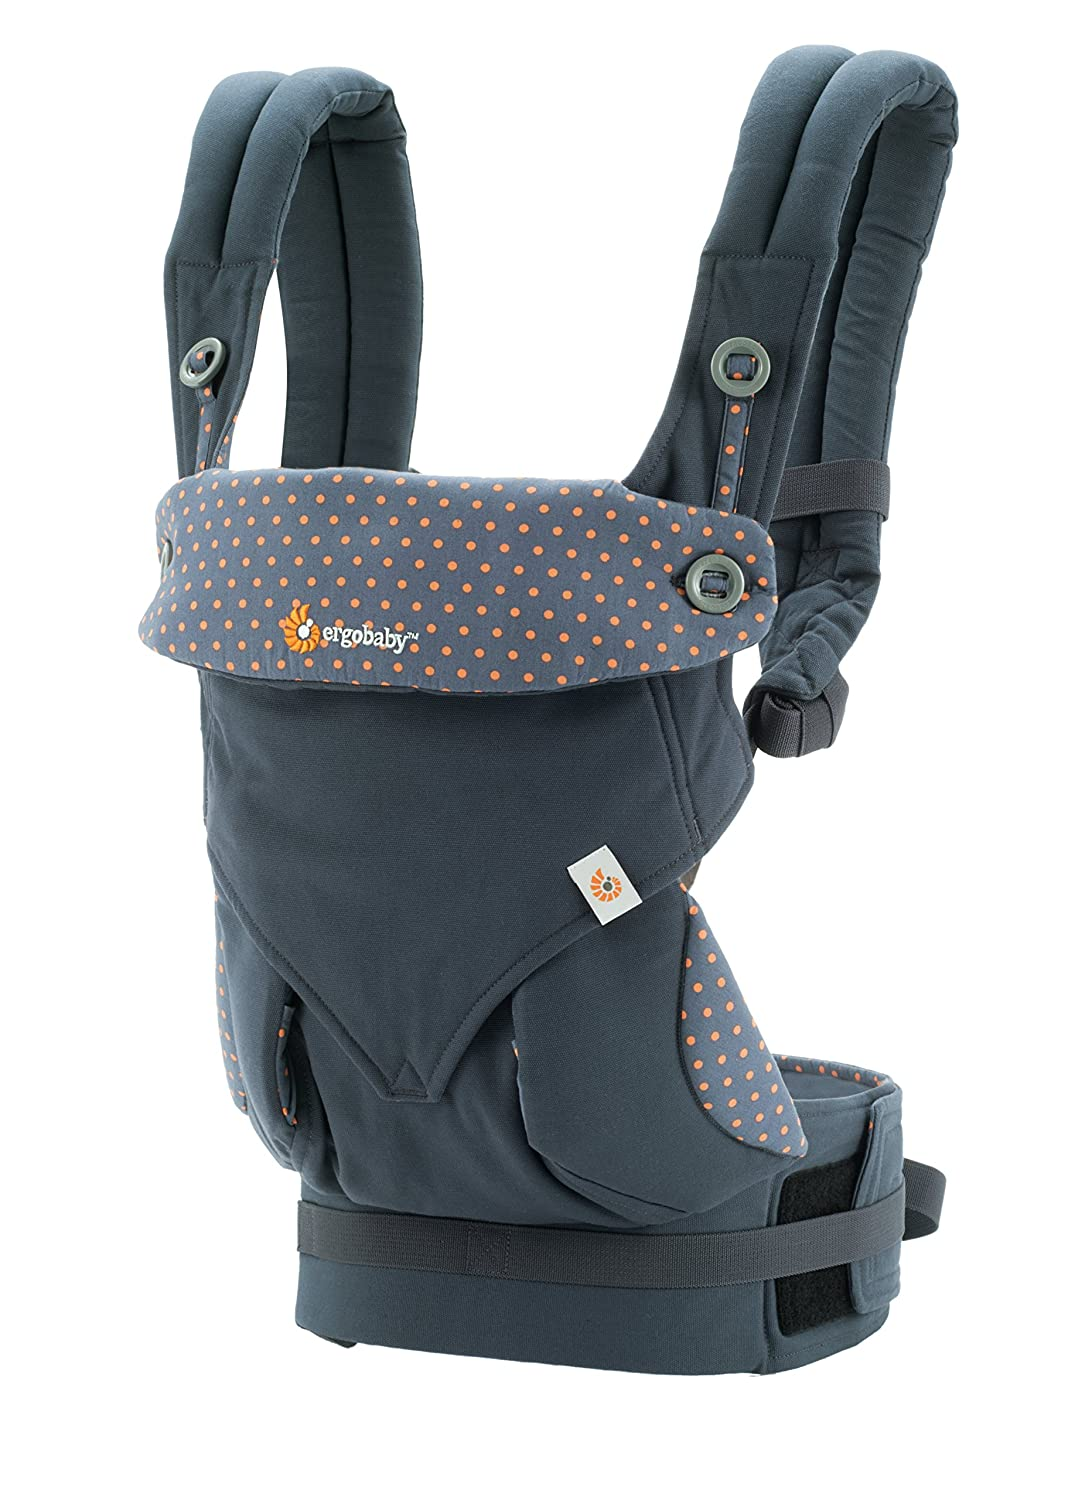 Ergobaby Four Position 360 Baby Carrier, Dusty Blue BC360ABLU